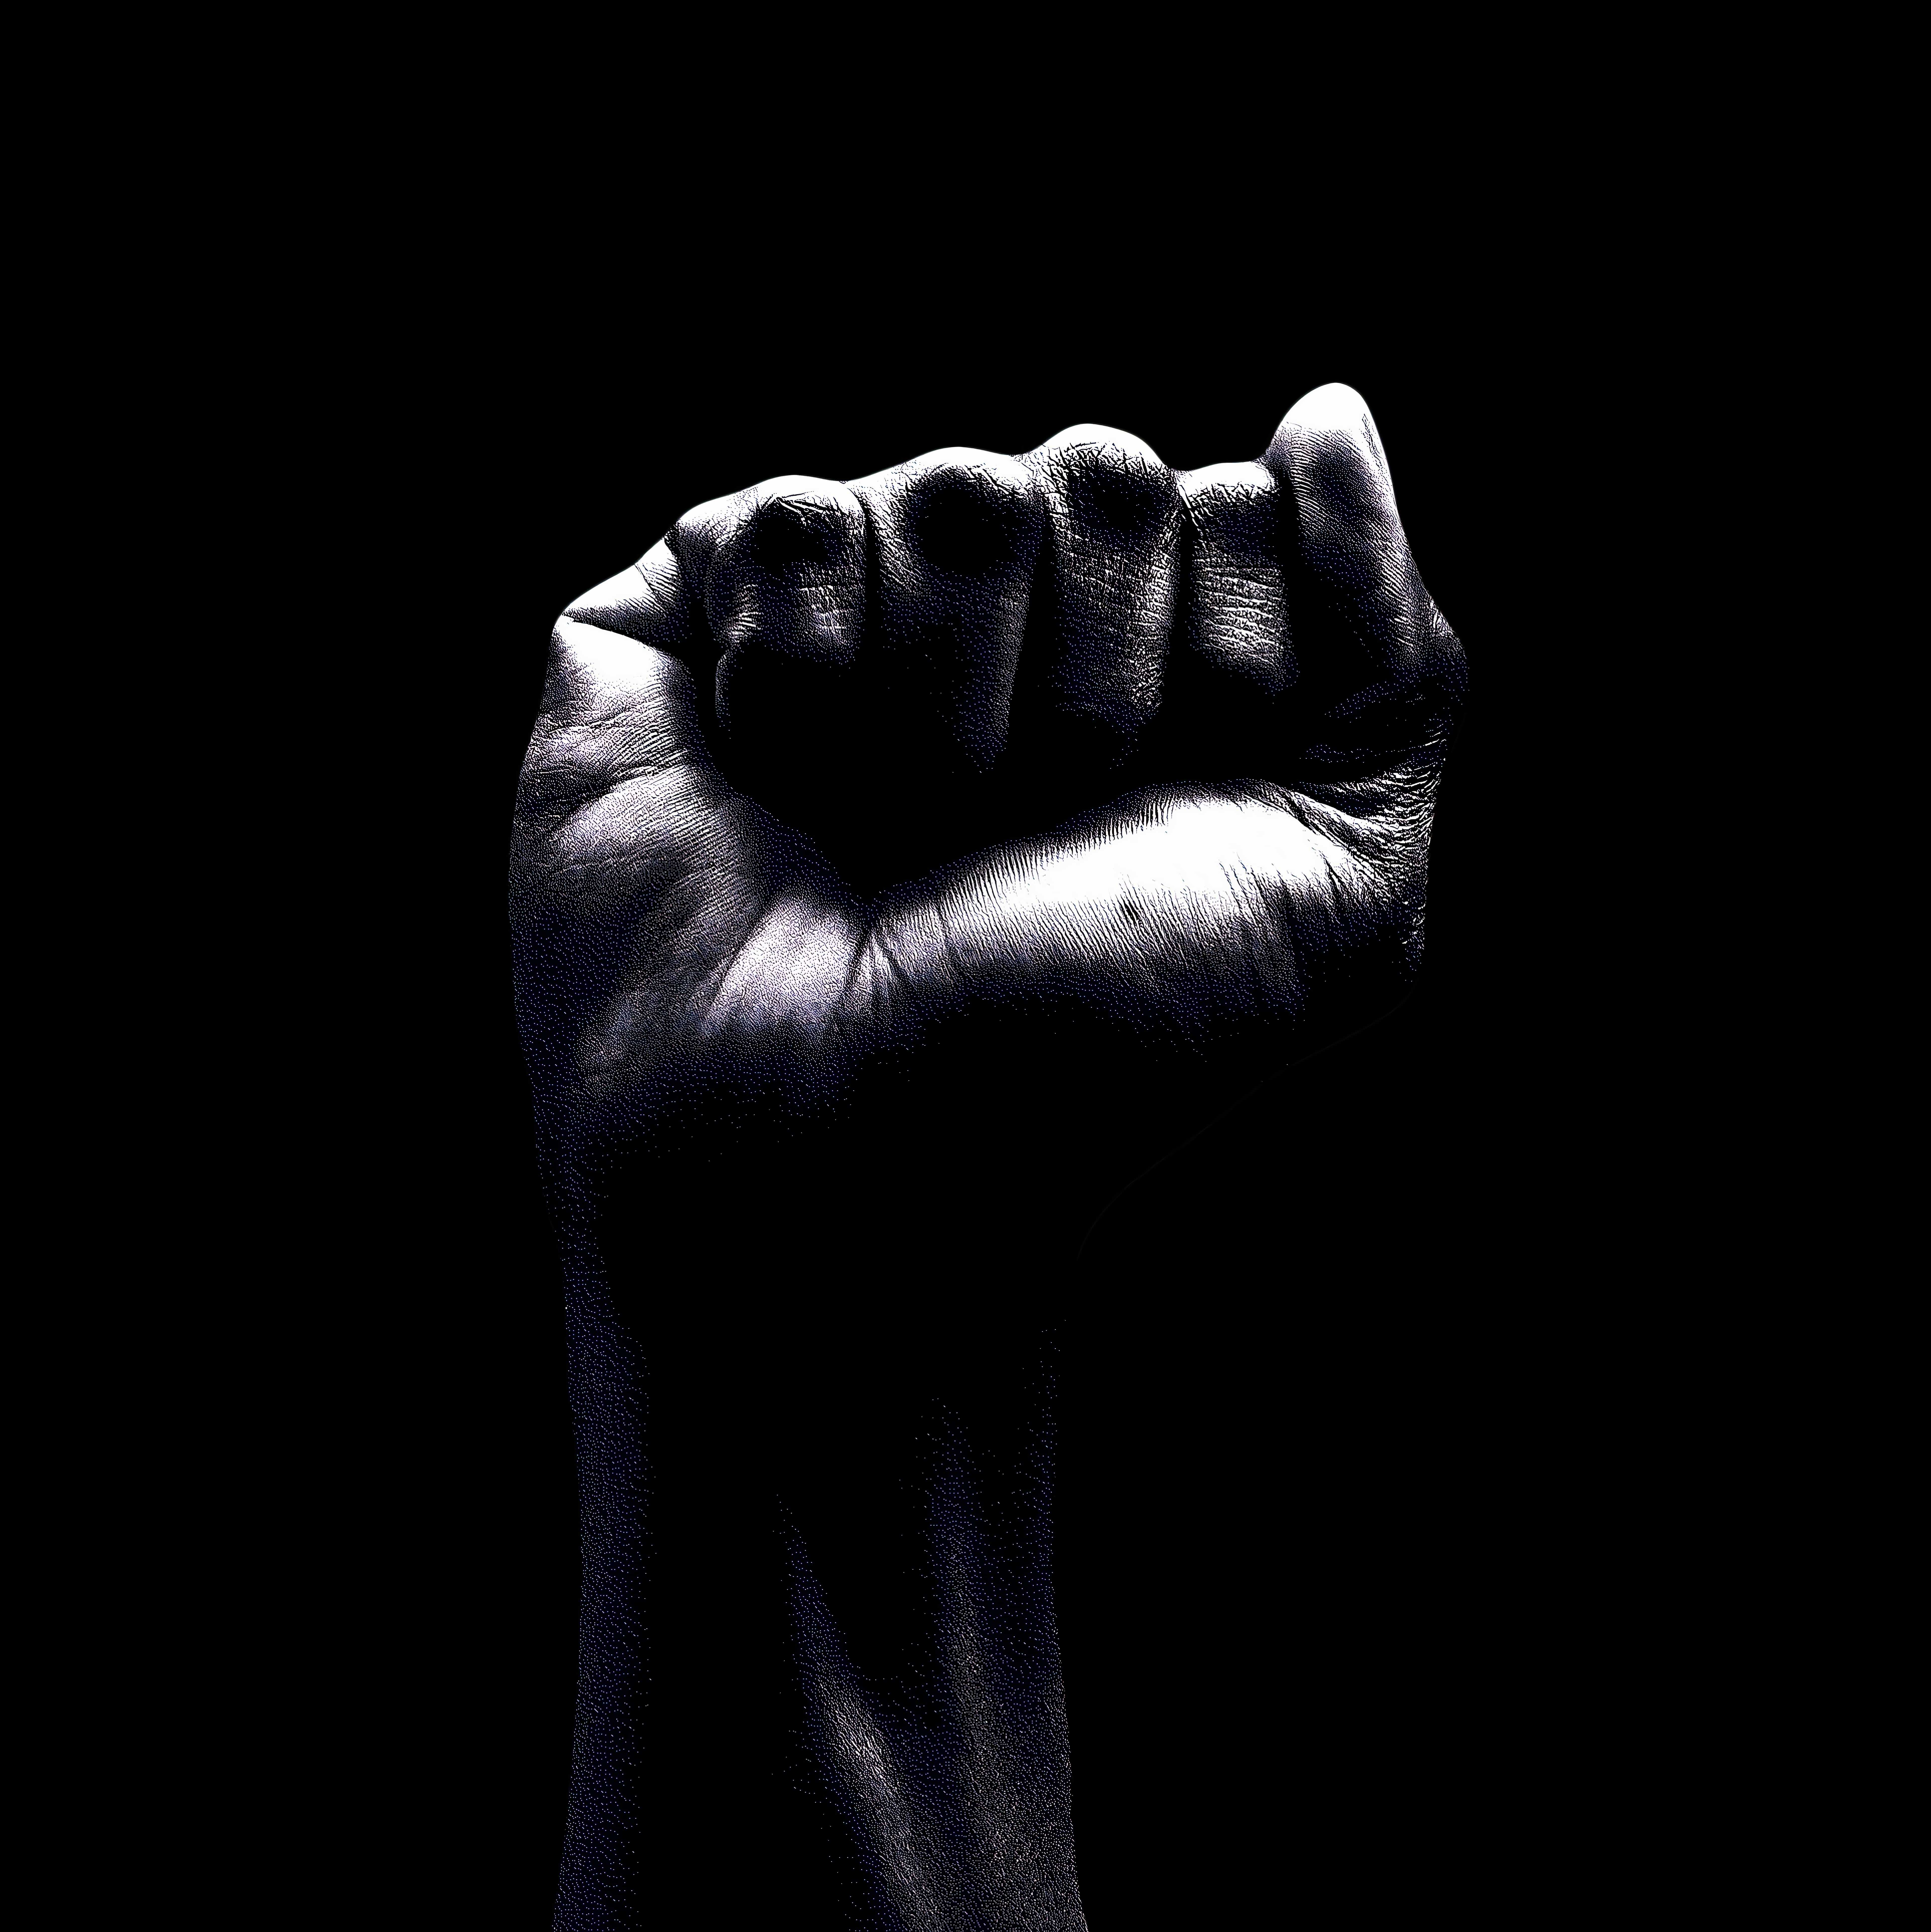 A fist in front of a black background.